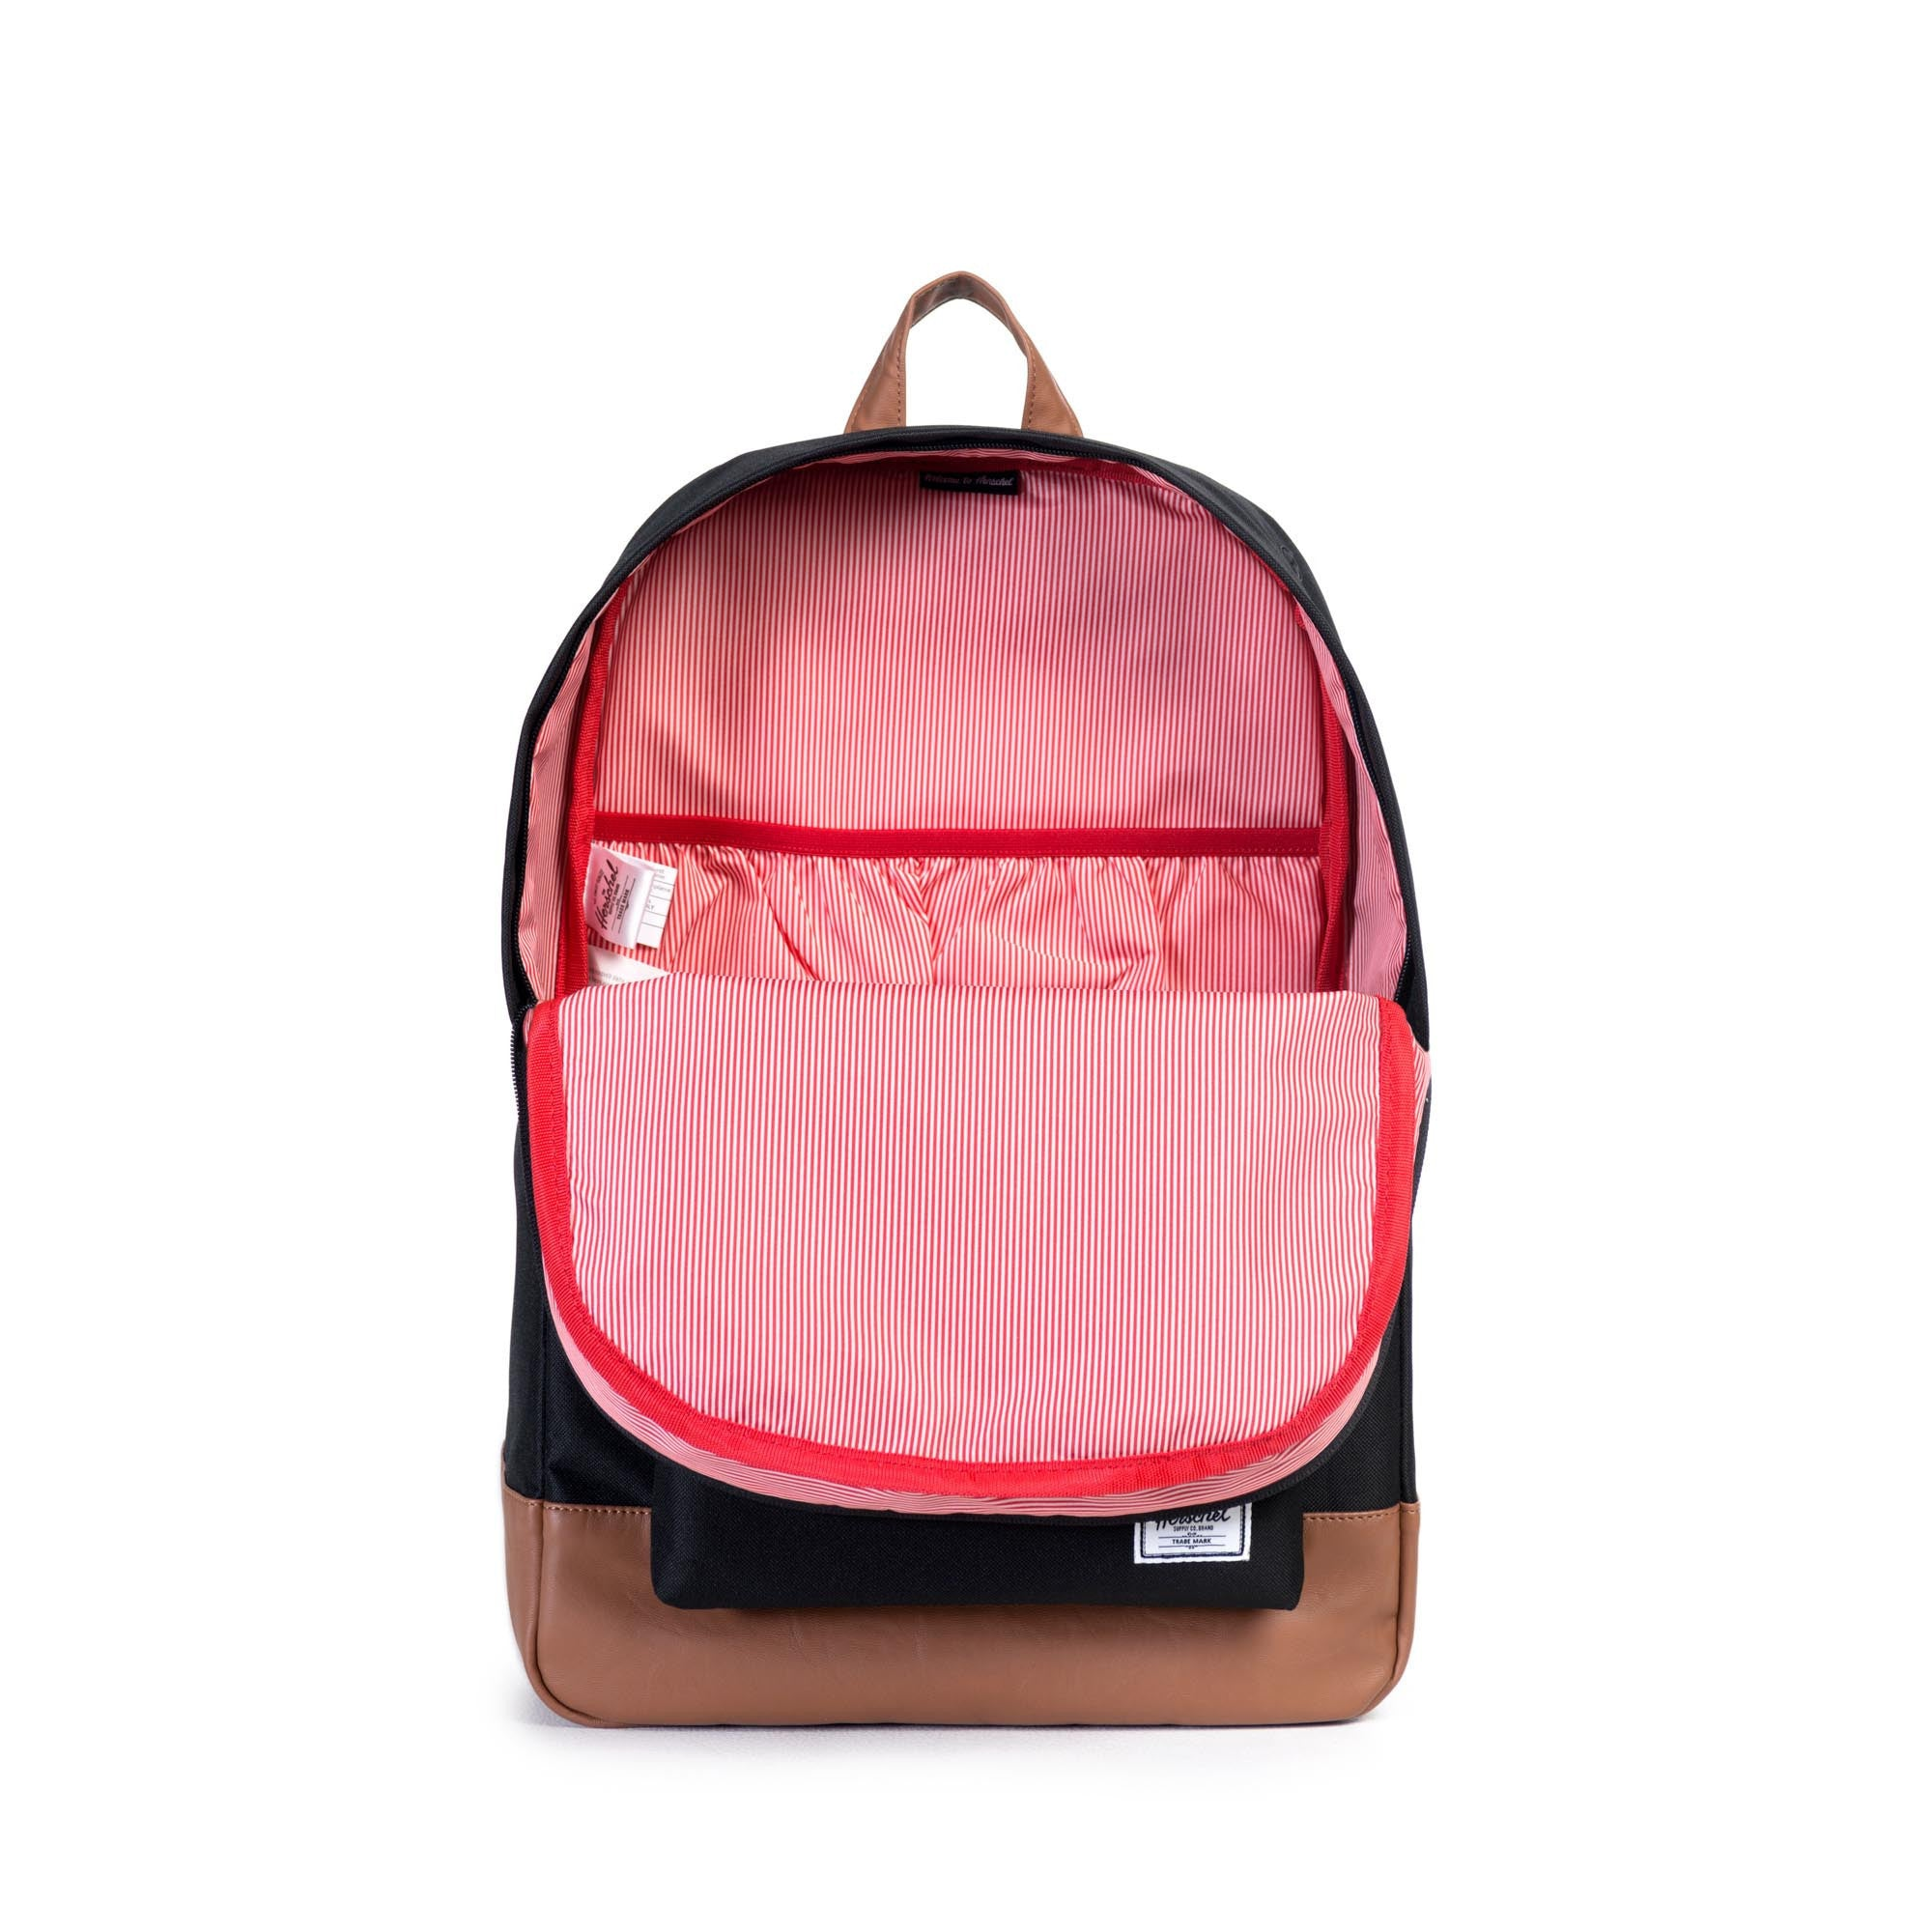 HERITAGE BACKPACK - BLACK / TAN